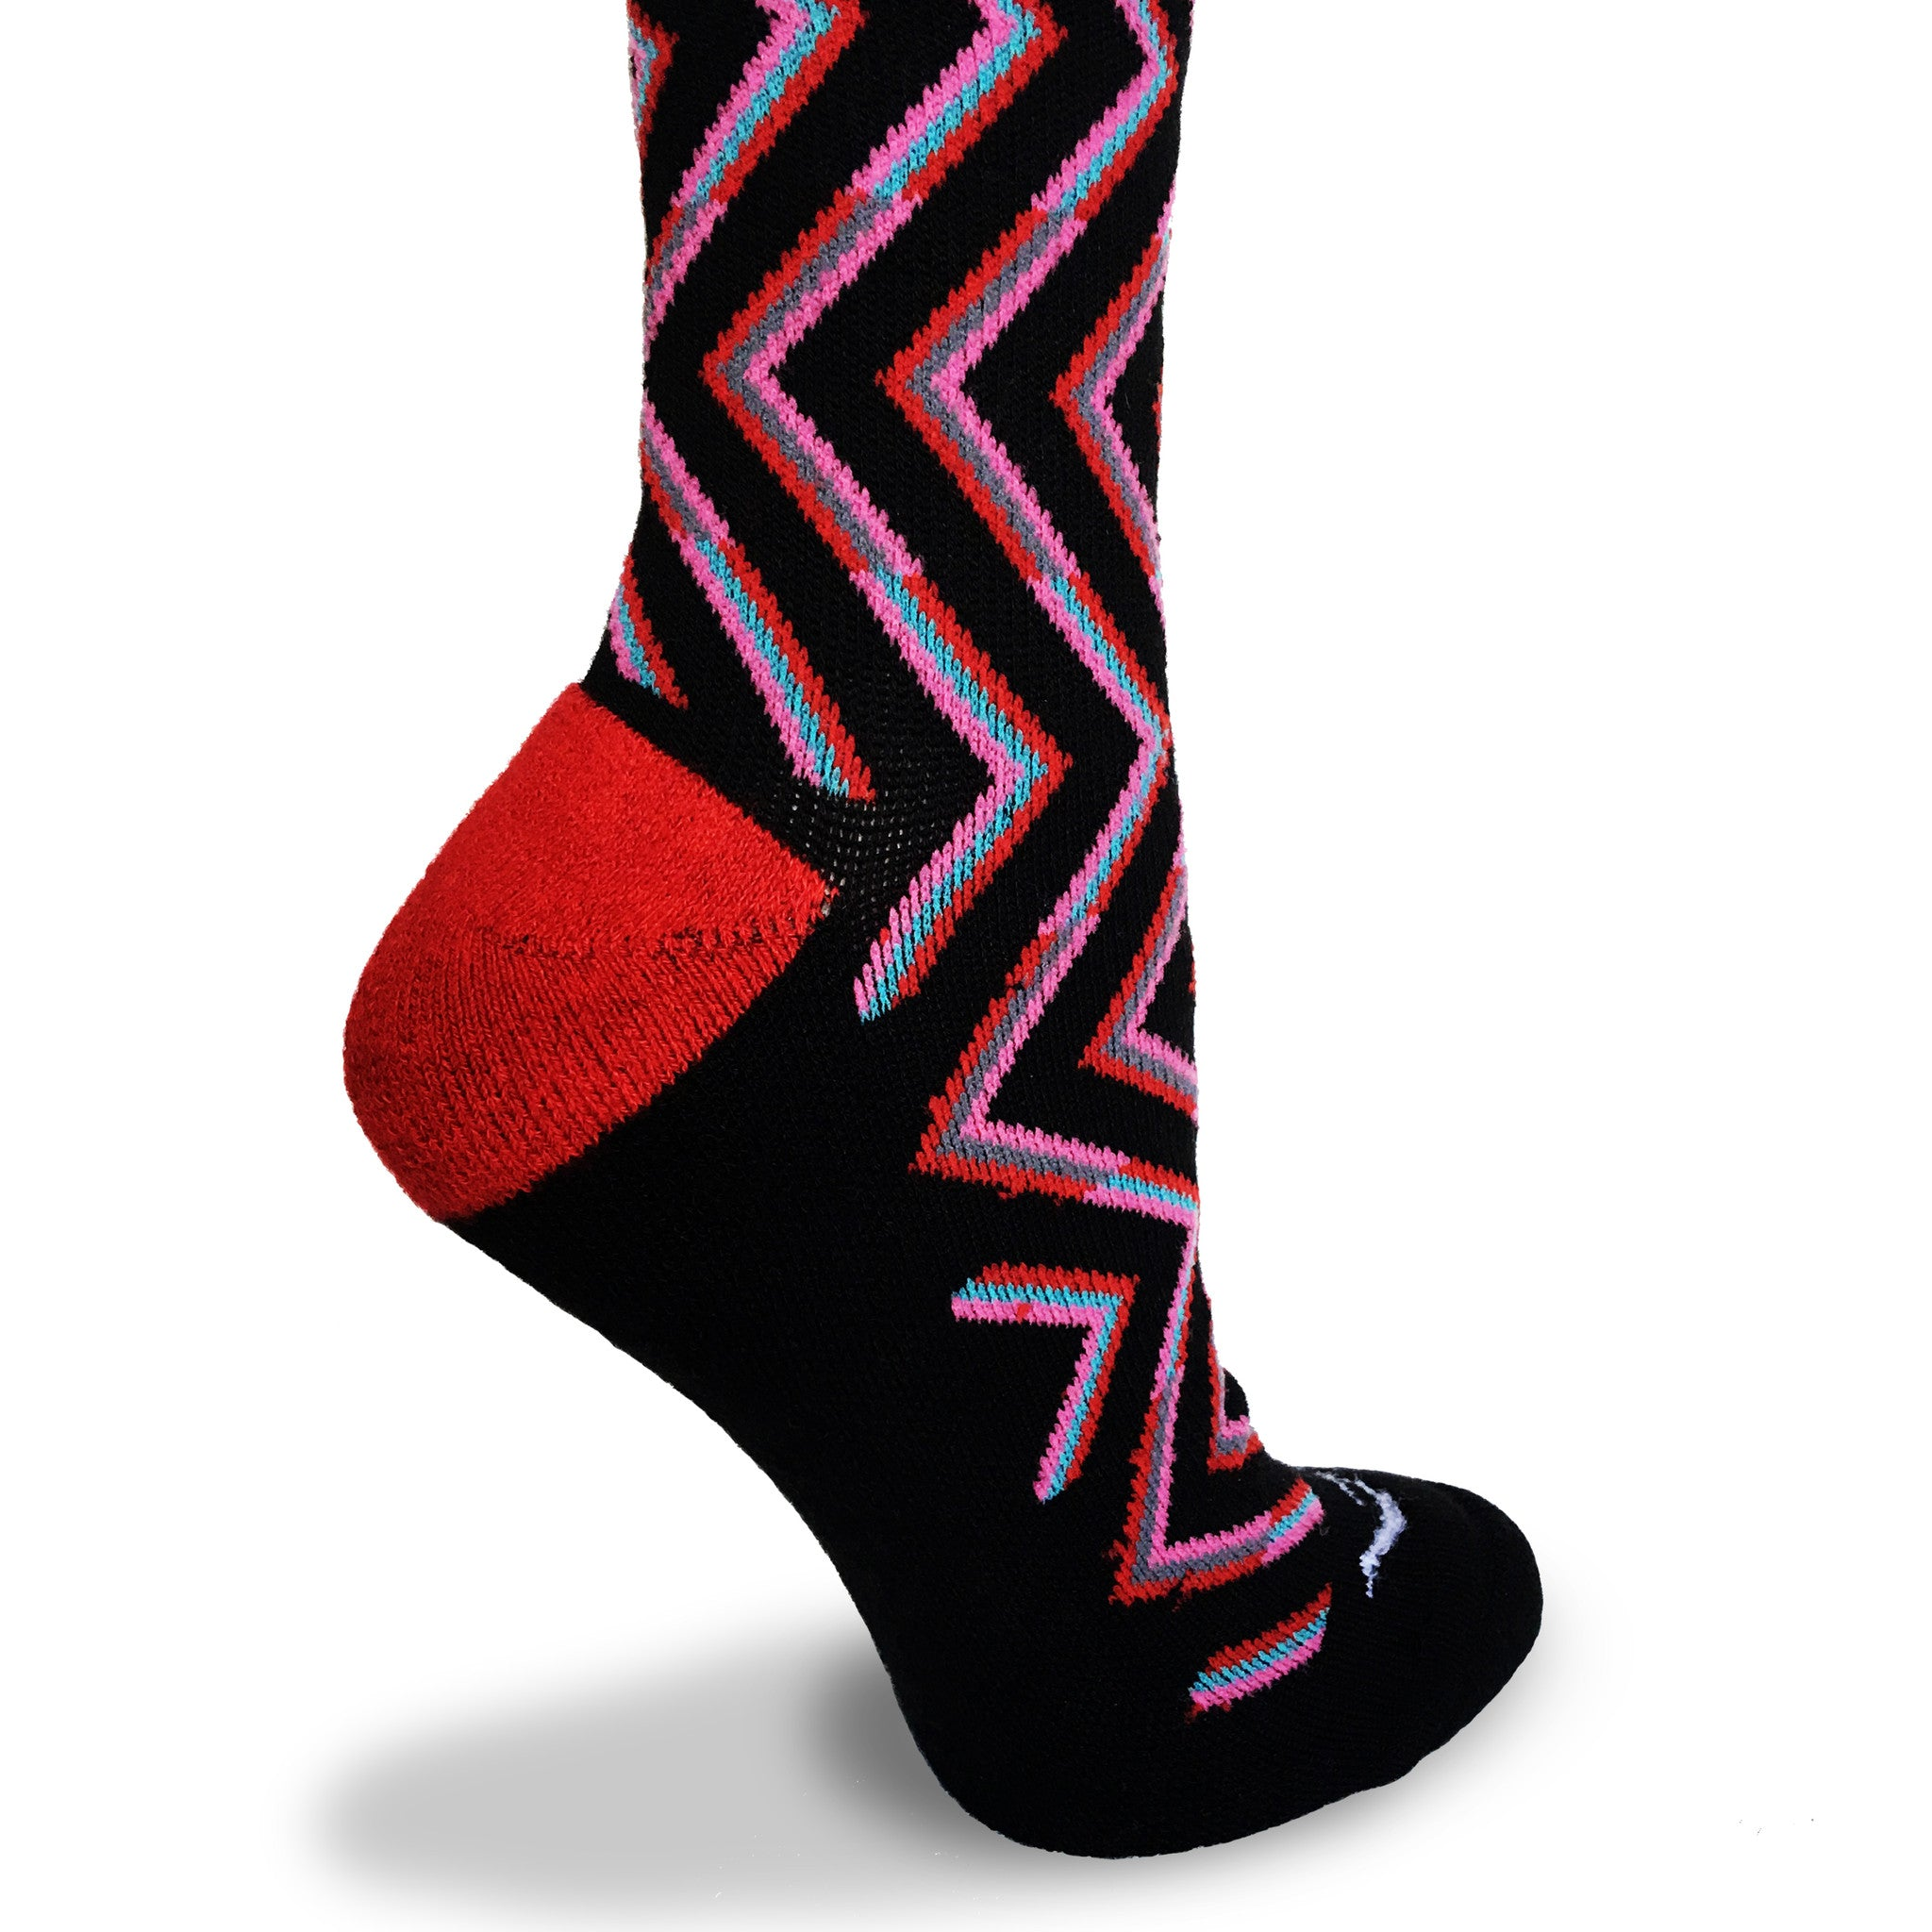 Zig Zag 20 - 30 mmhg Merino Wool Graduated Compression Socks